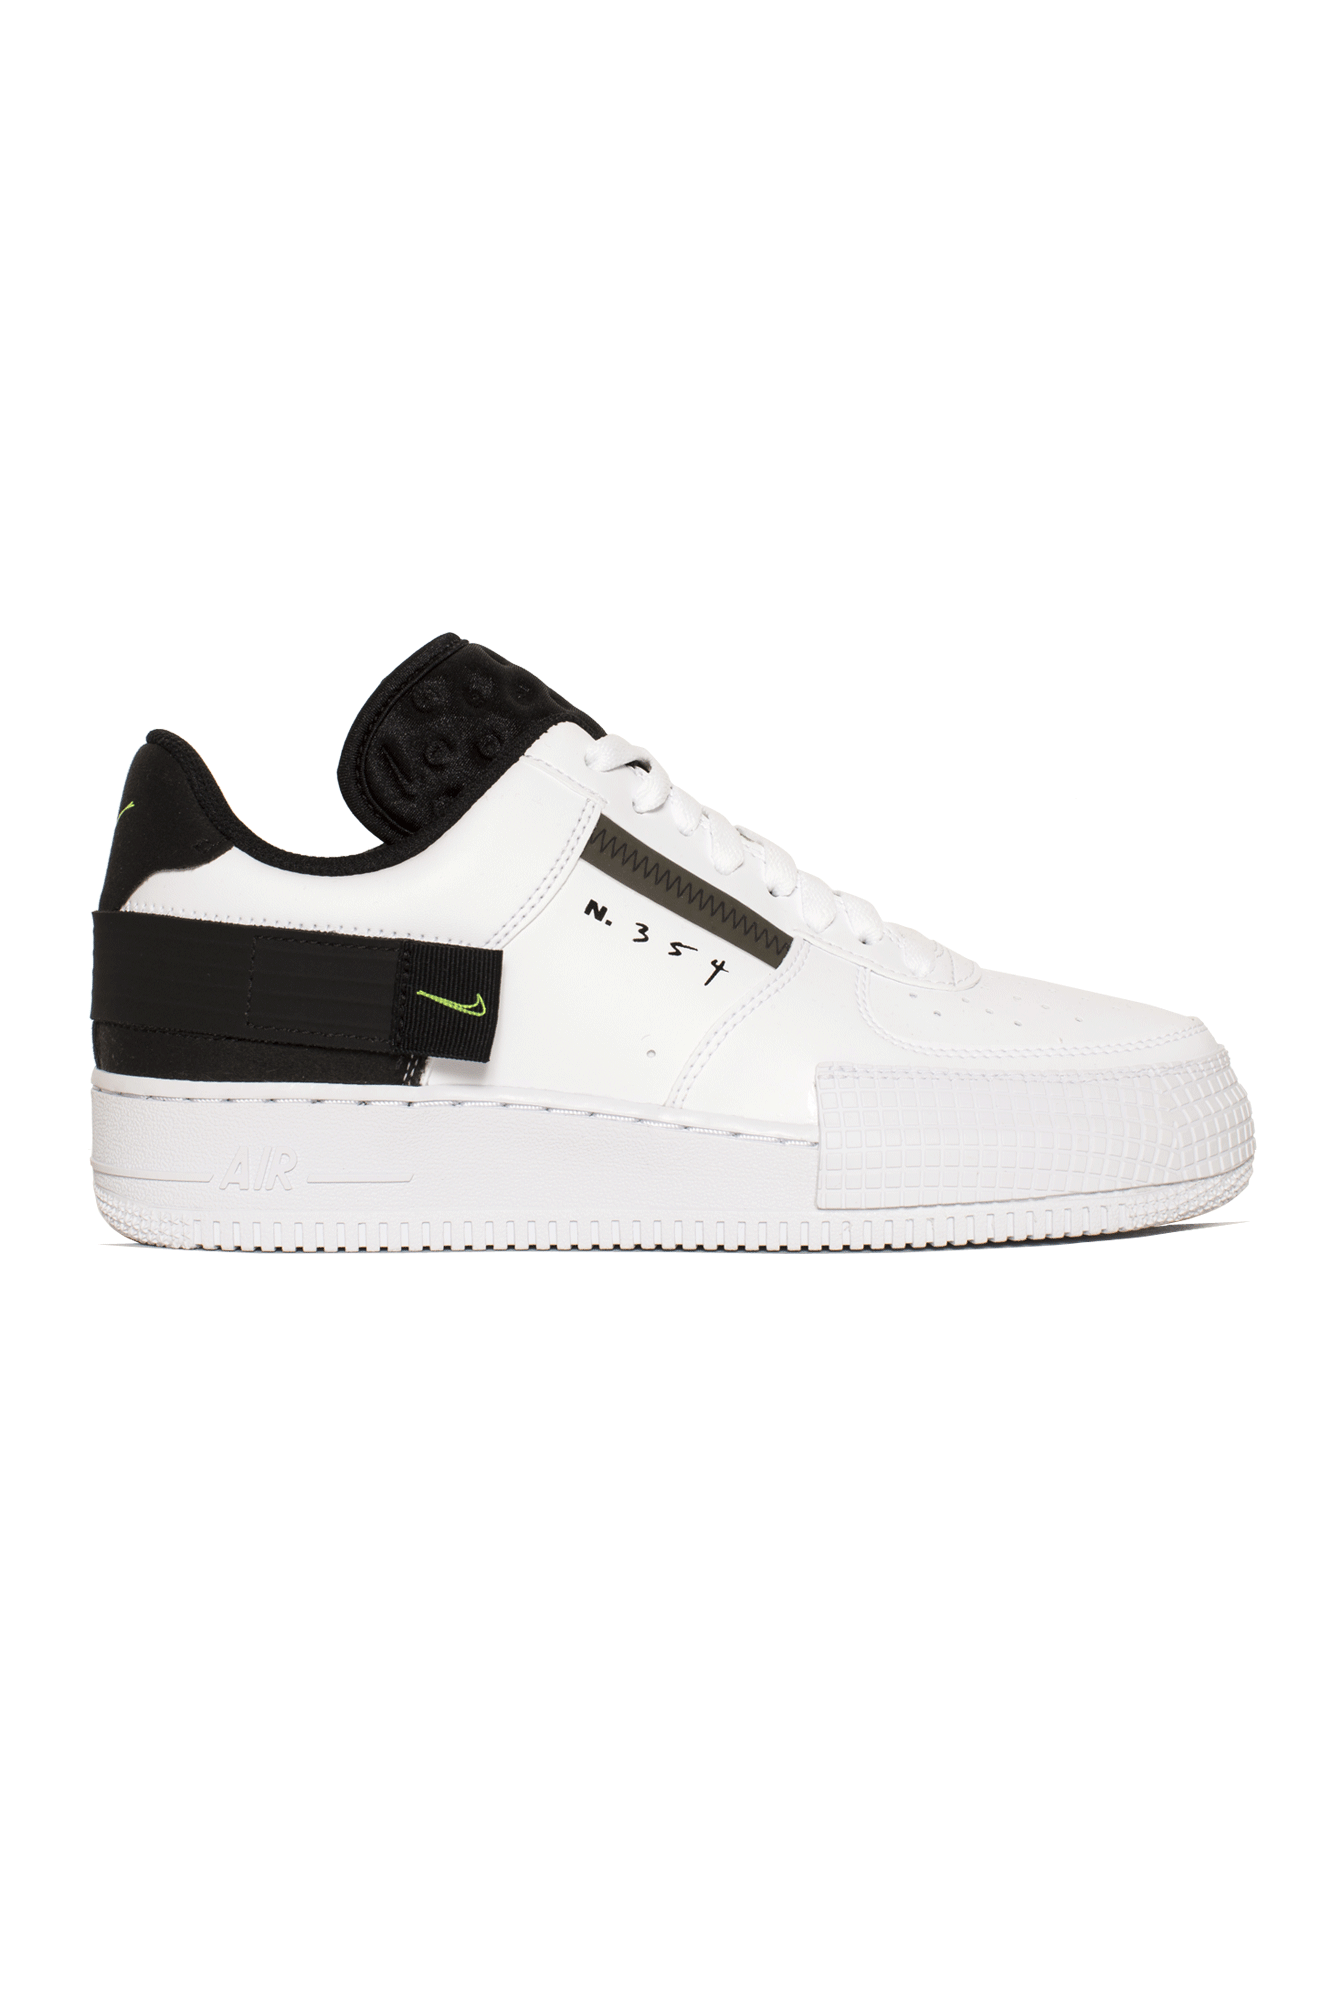 Nike Sneakers Air Force 1 Type Bianco AT7859-#000#101#7 - One Block Down